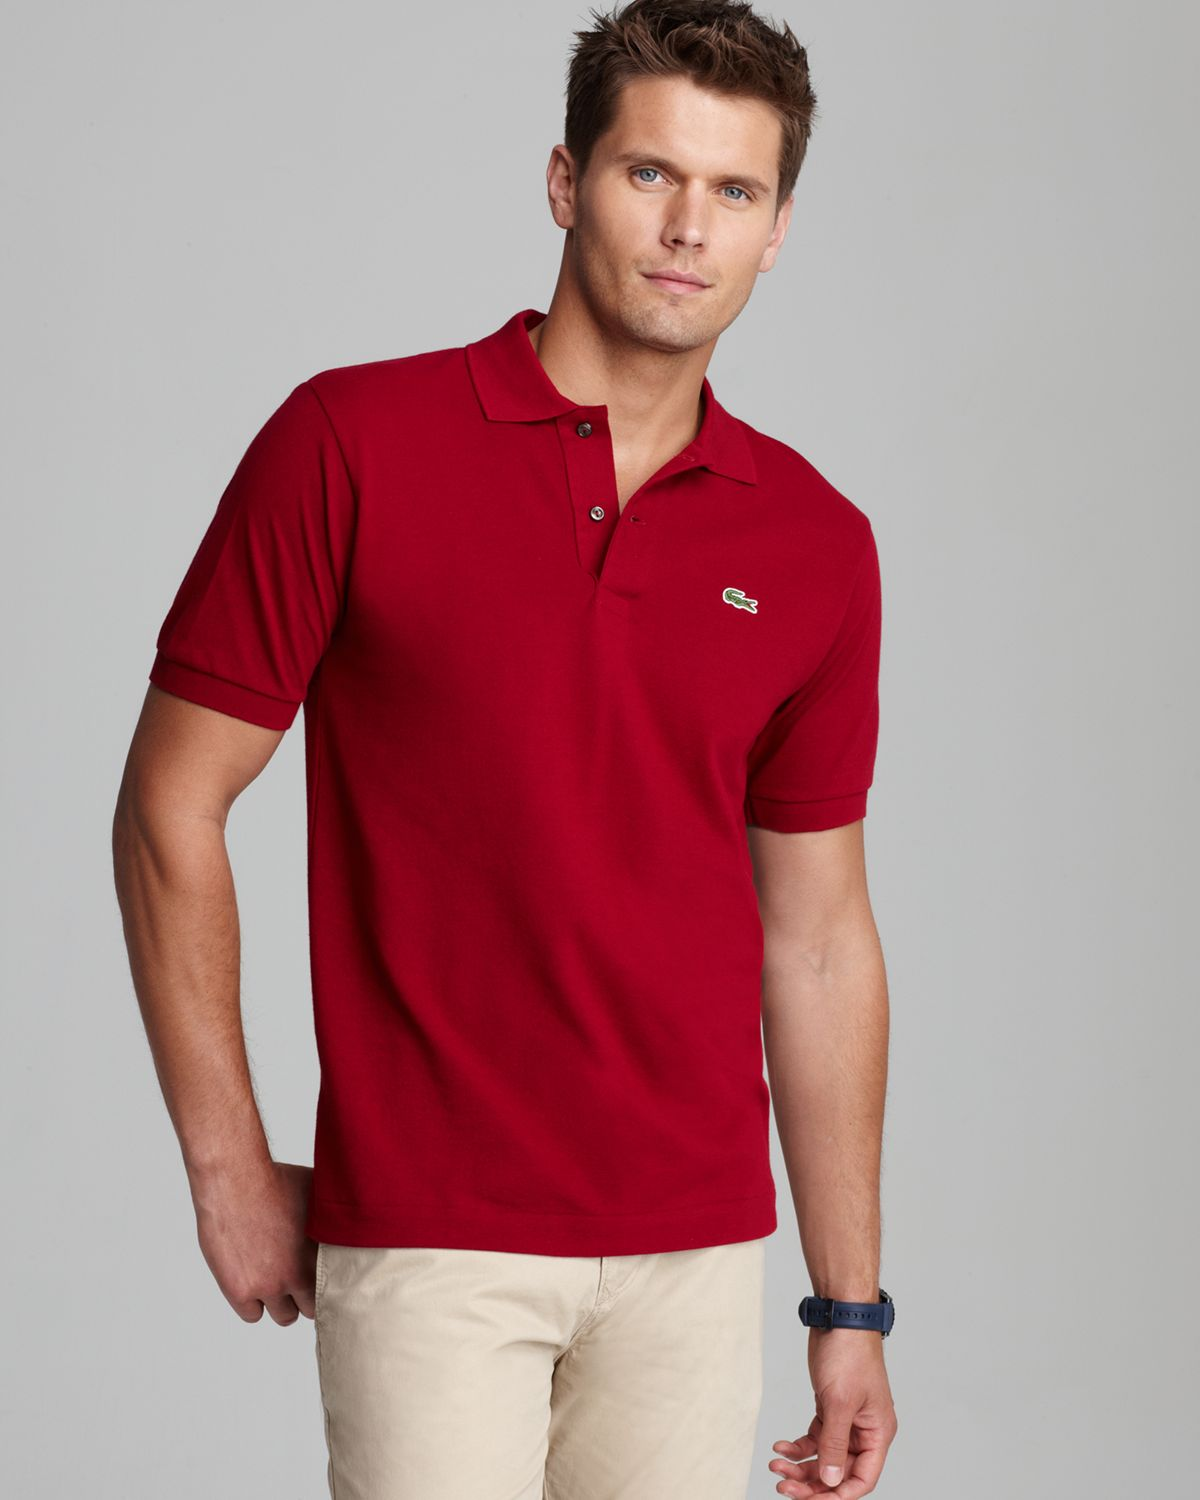 2291cd8ecf43b Lyst - Lacoste Classic Short Sleeve Piqué Polo Shirt in Red for Men